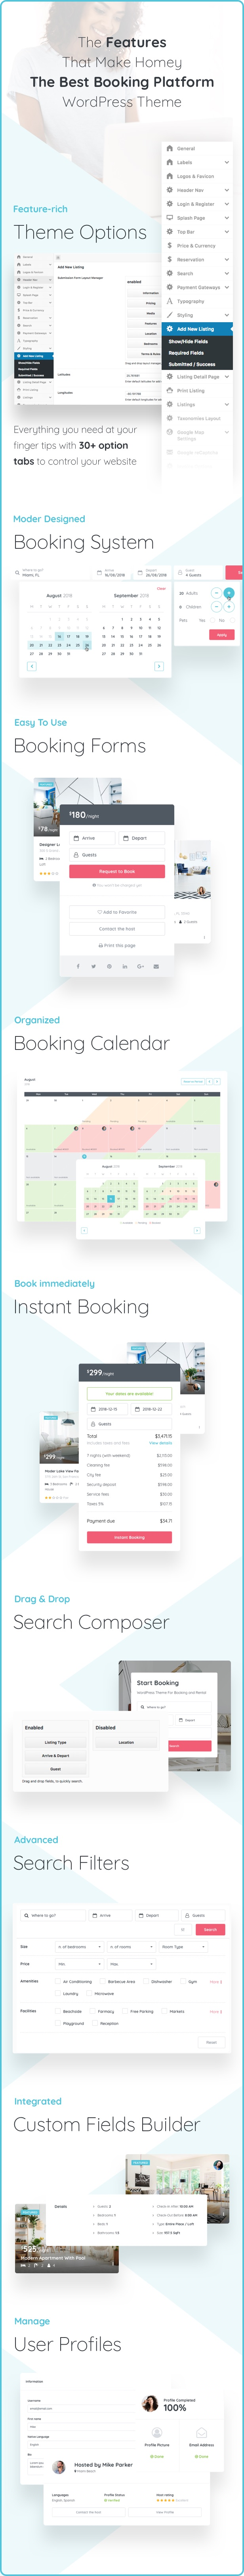 Homey - Booking and Rentals WordPress Theme - 9